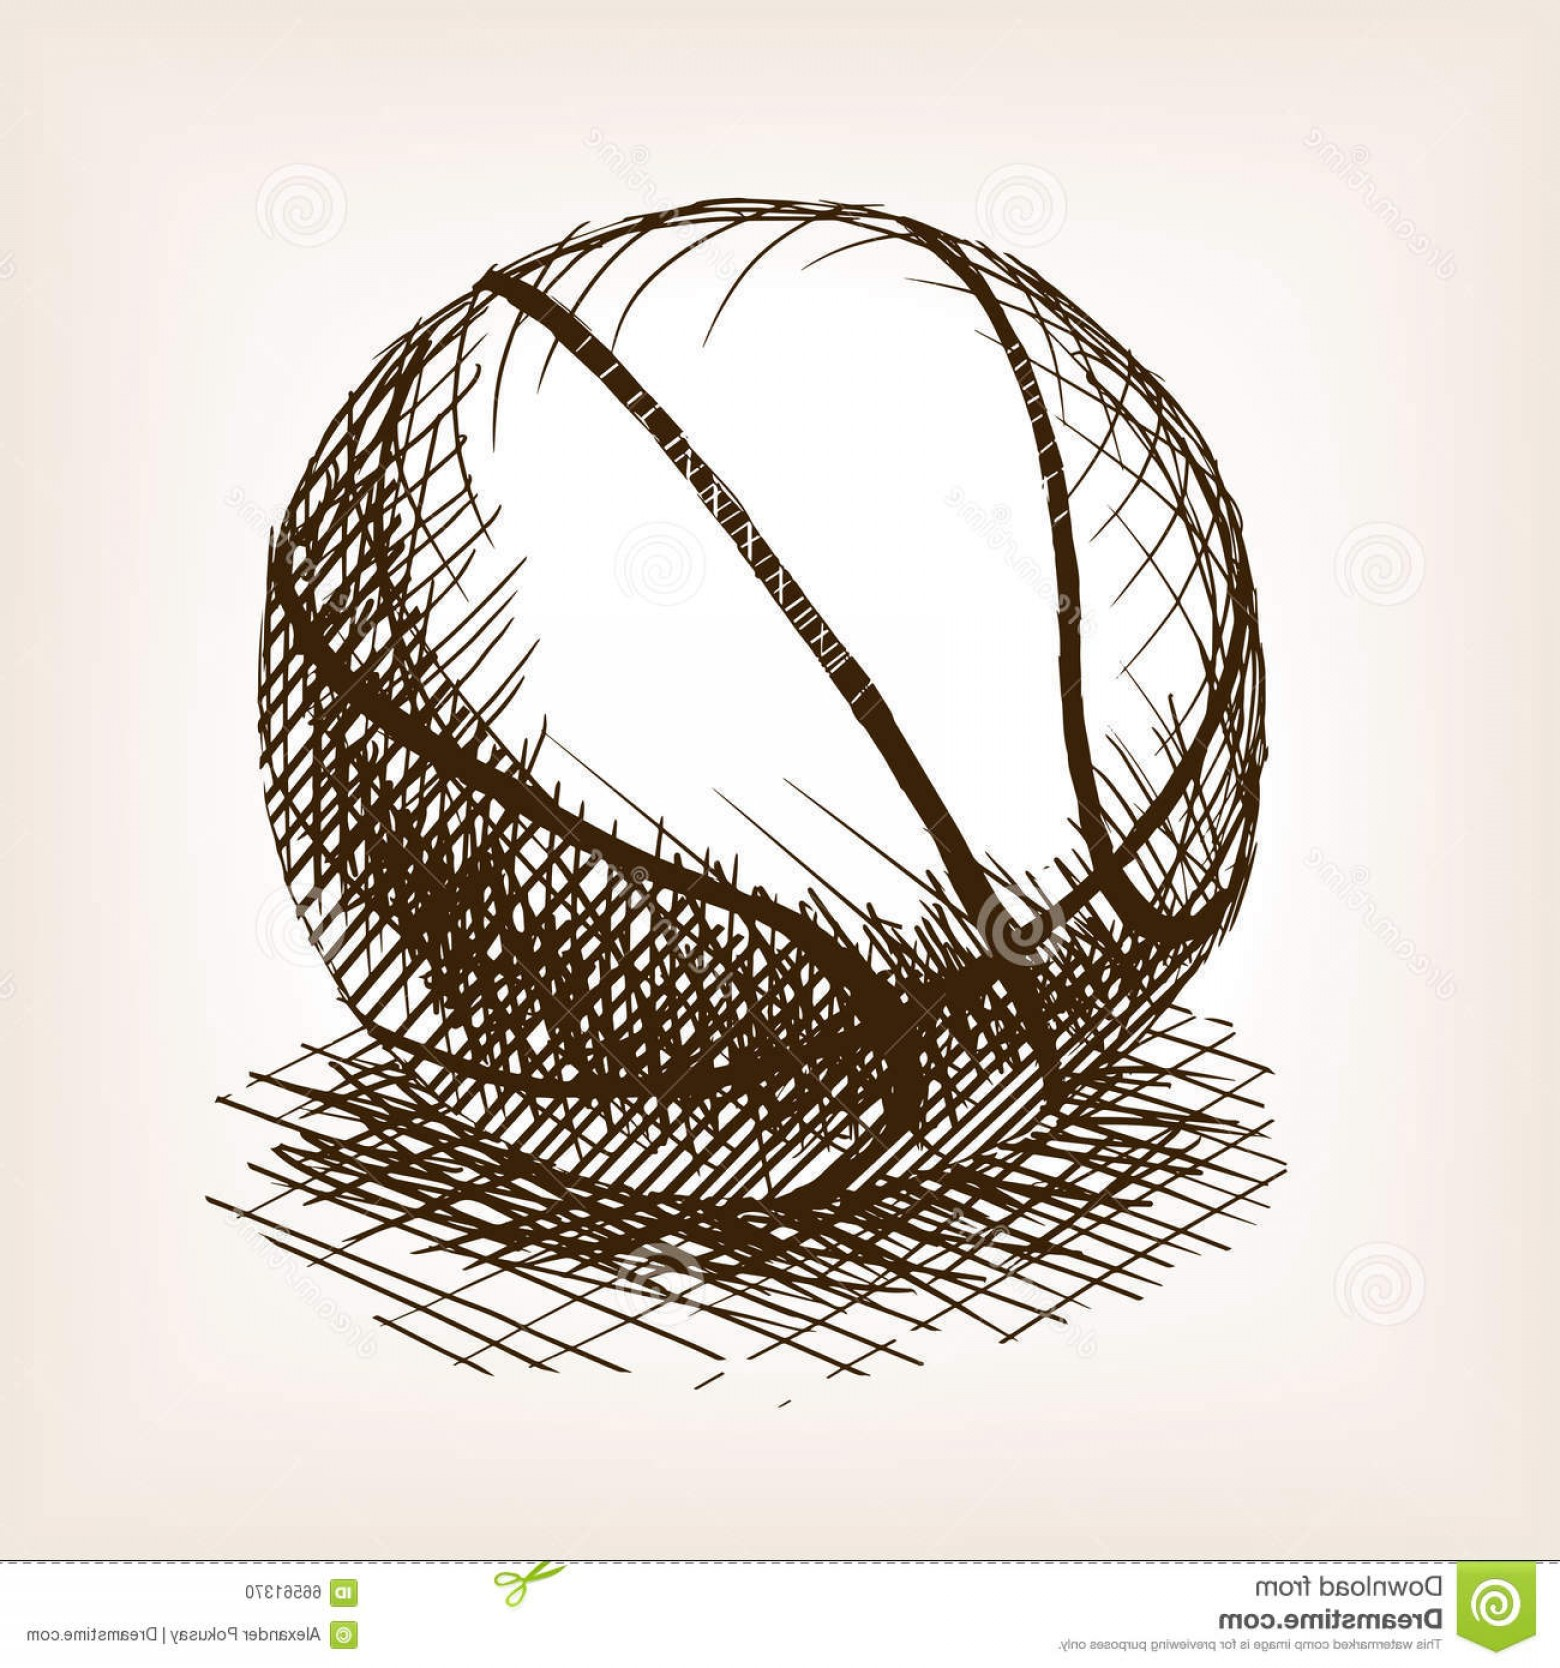 Vintage Basketball Vector: Stock Illustration Basketball Hand Drawn Sketch Style Vector Illustration Old Engraving Imitation Ball Imitation Image